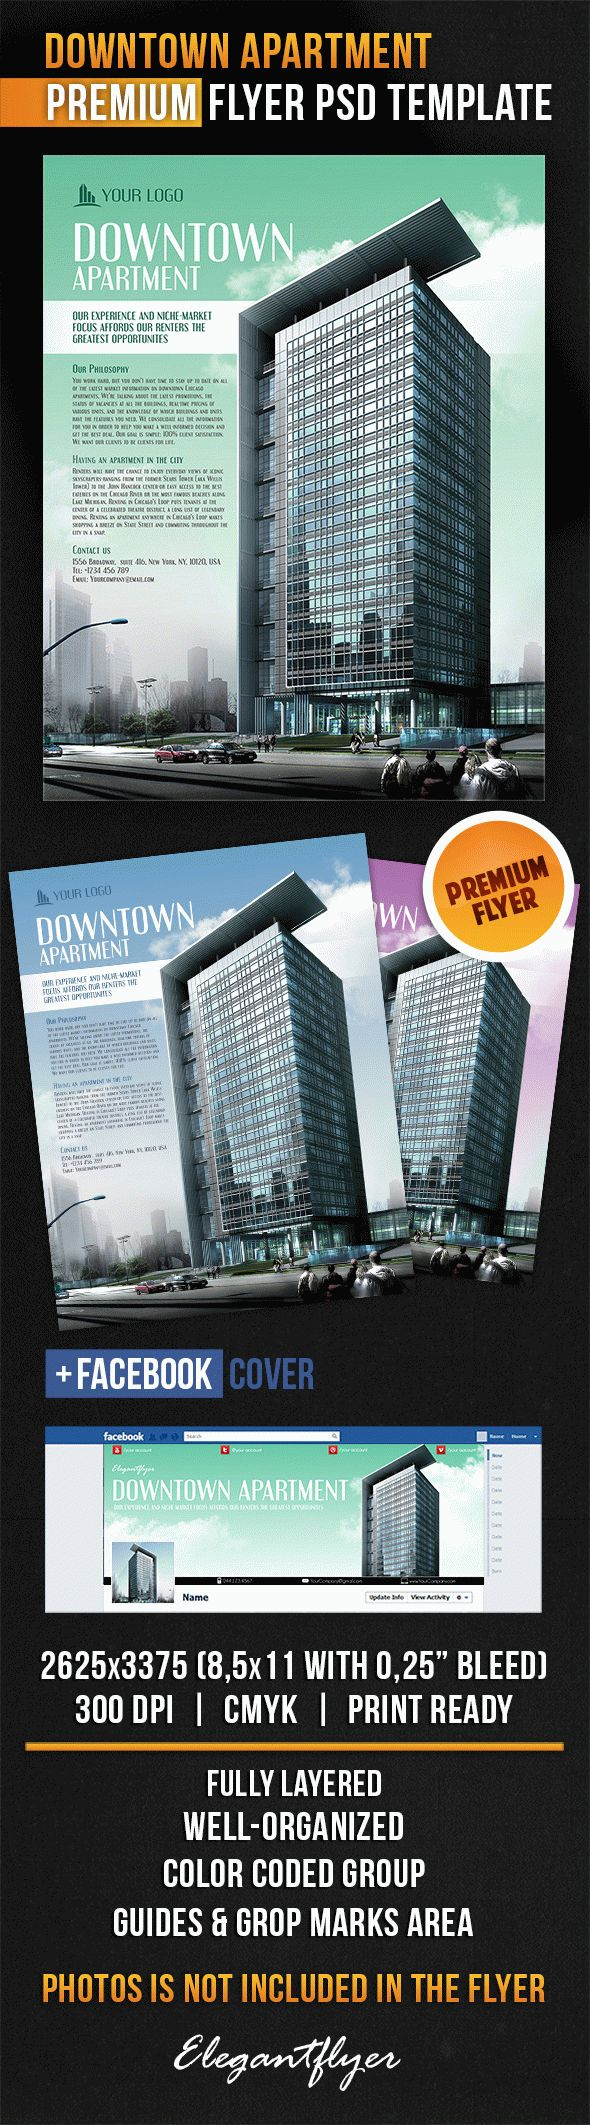 downtown apartment flyer psd template facebook cover by downtown apartment flyer psd template facebook cover